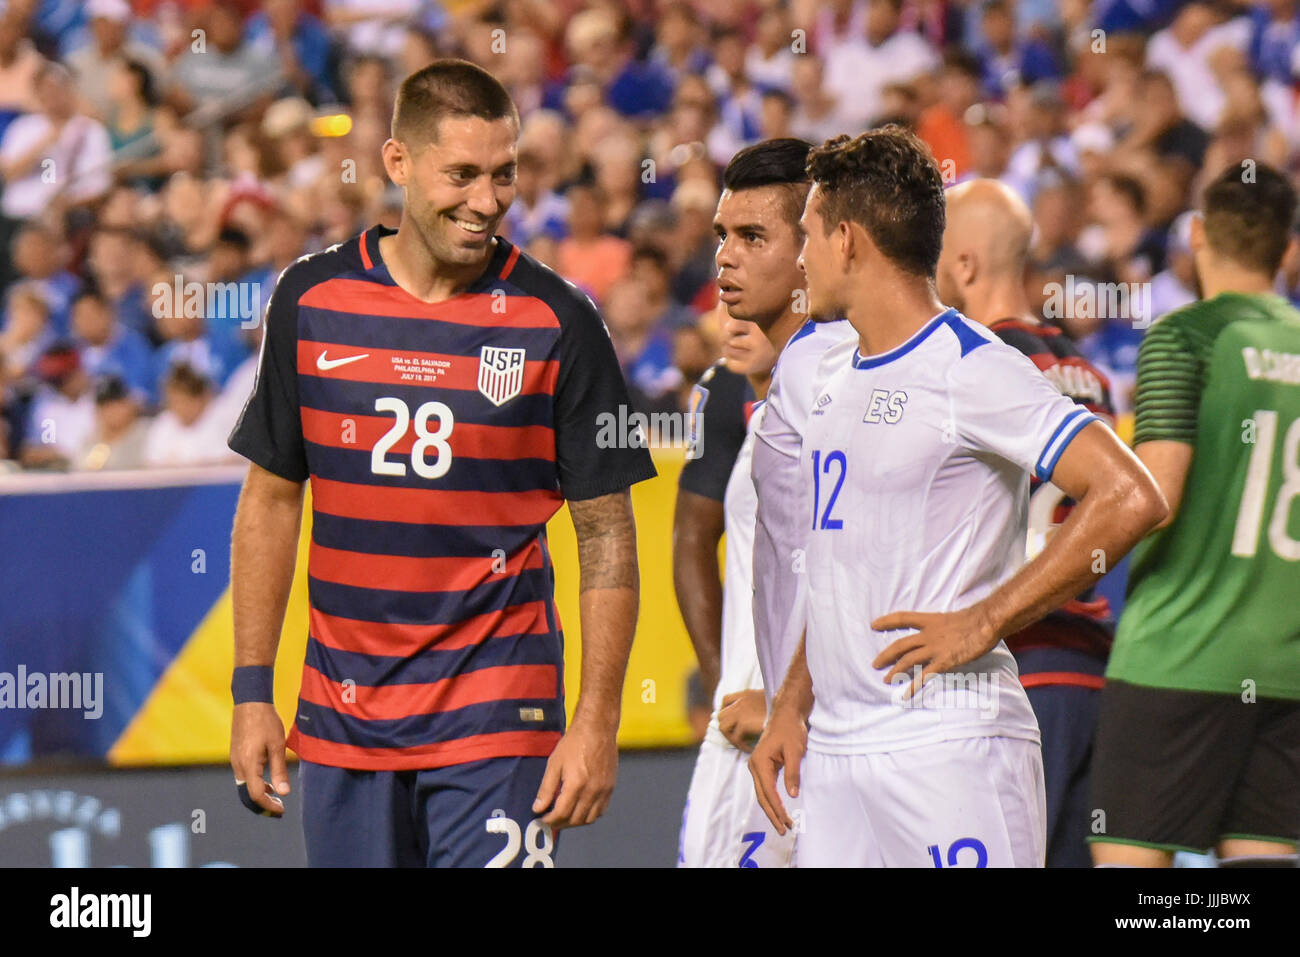 Clint Dempsey of the USMNT United States Mens National Team jokes / laughs / smiles during a soccer | football match - Stock Image